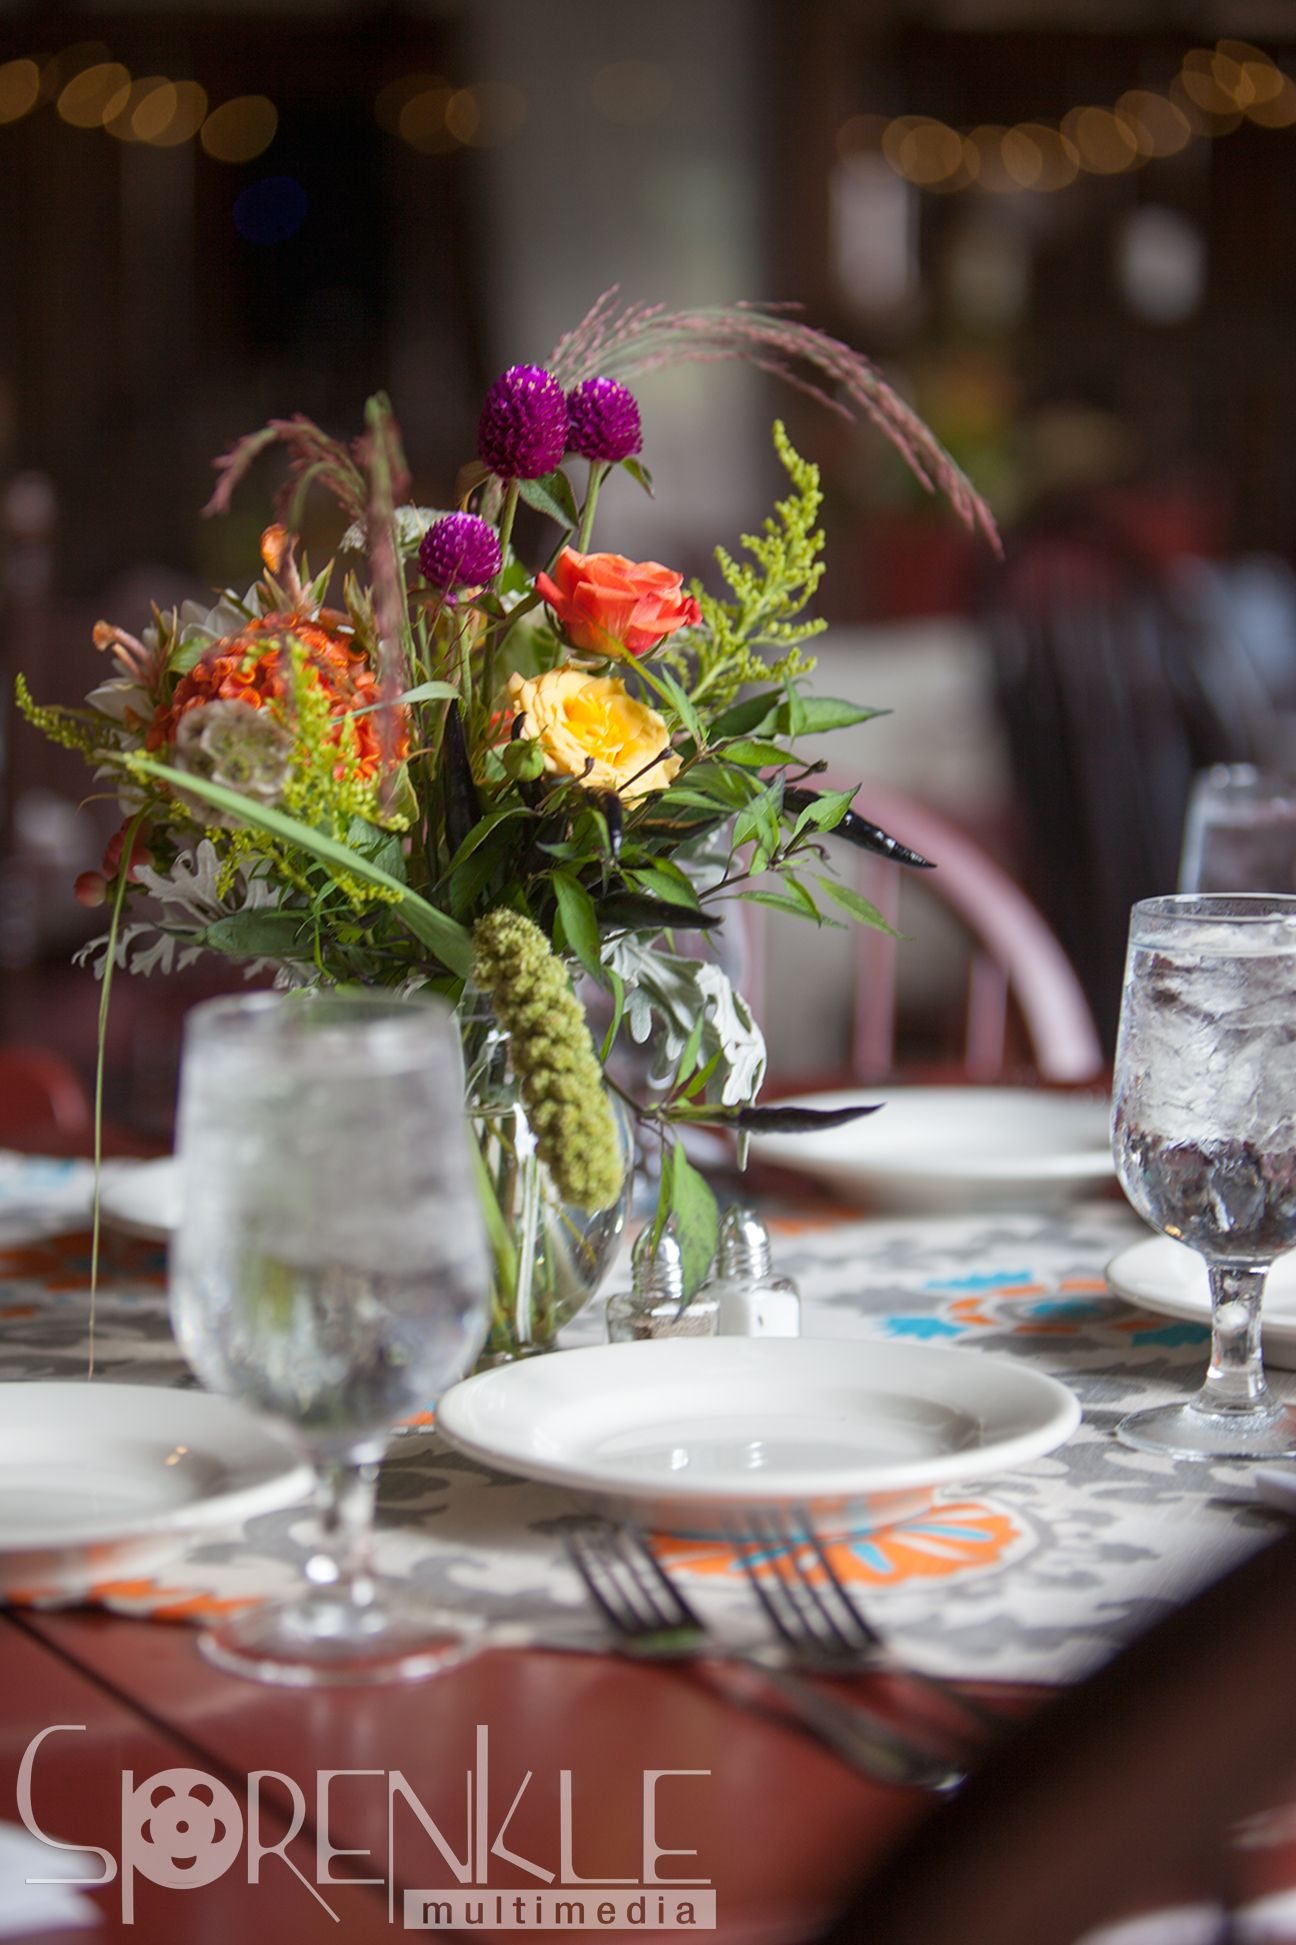 Multi-colored flower arrangement and table setting at wedding.